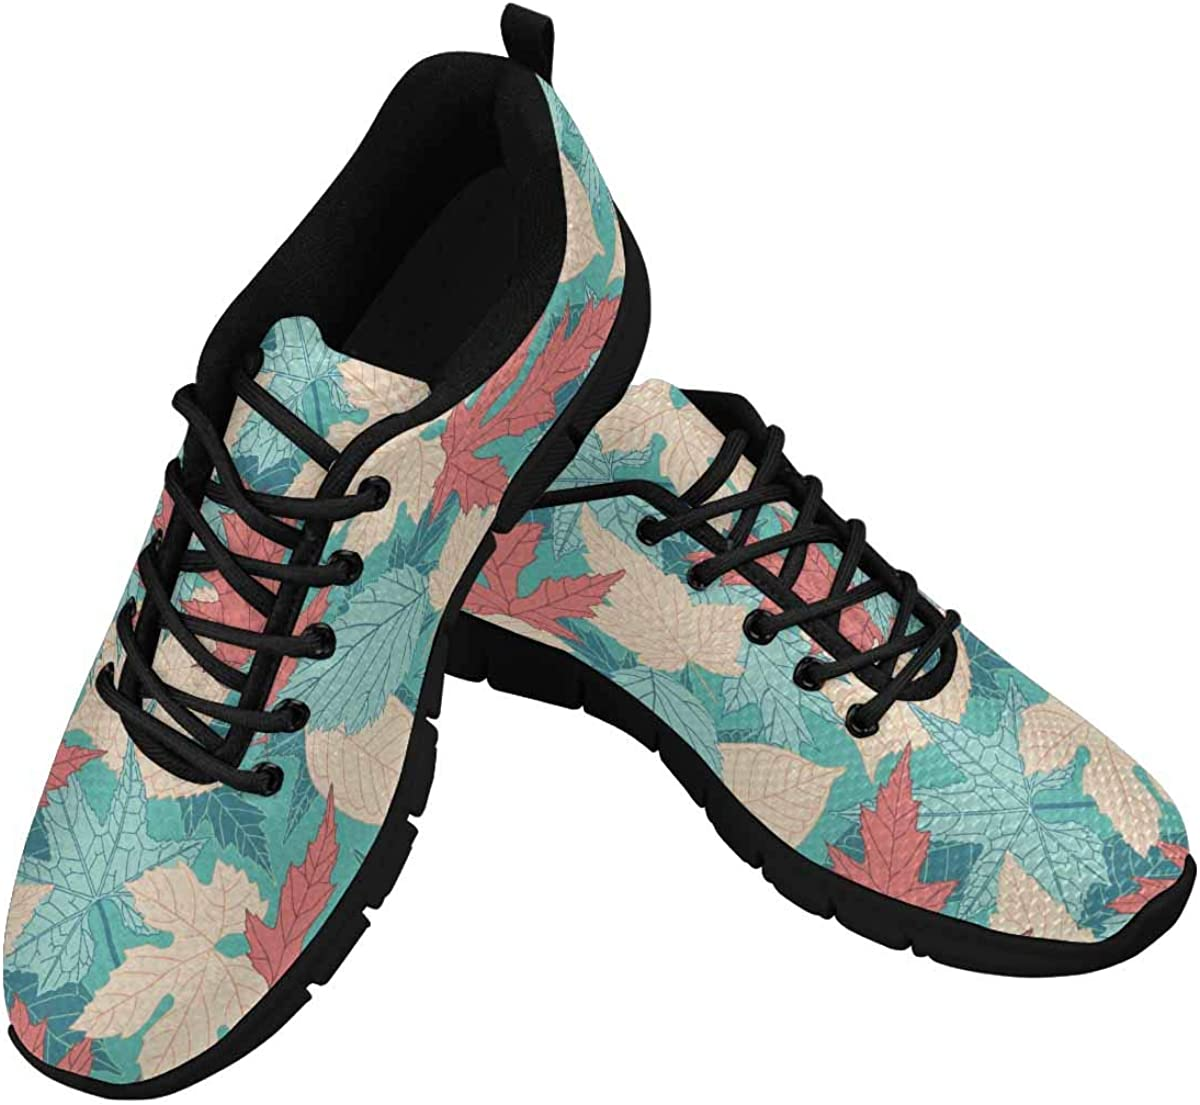 INTERESTPRINT Leaves on Blue Background Women Walking Shoes Comfortable Lightweight Work Casual Travel Sneakers